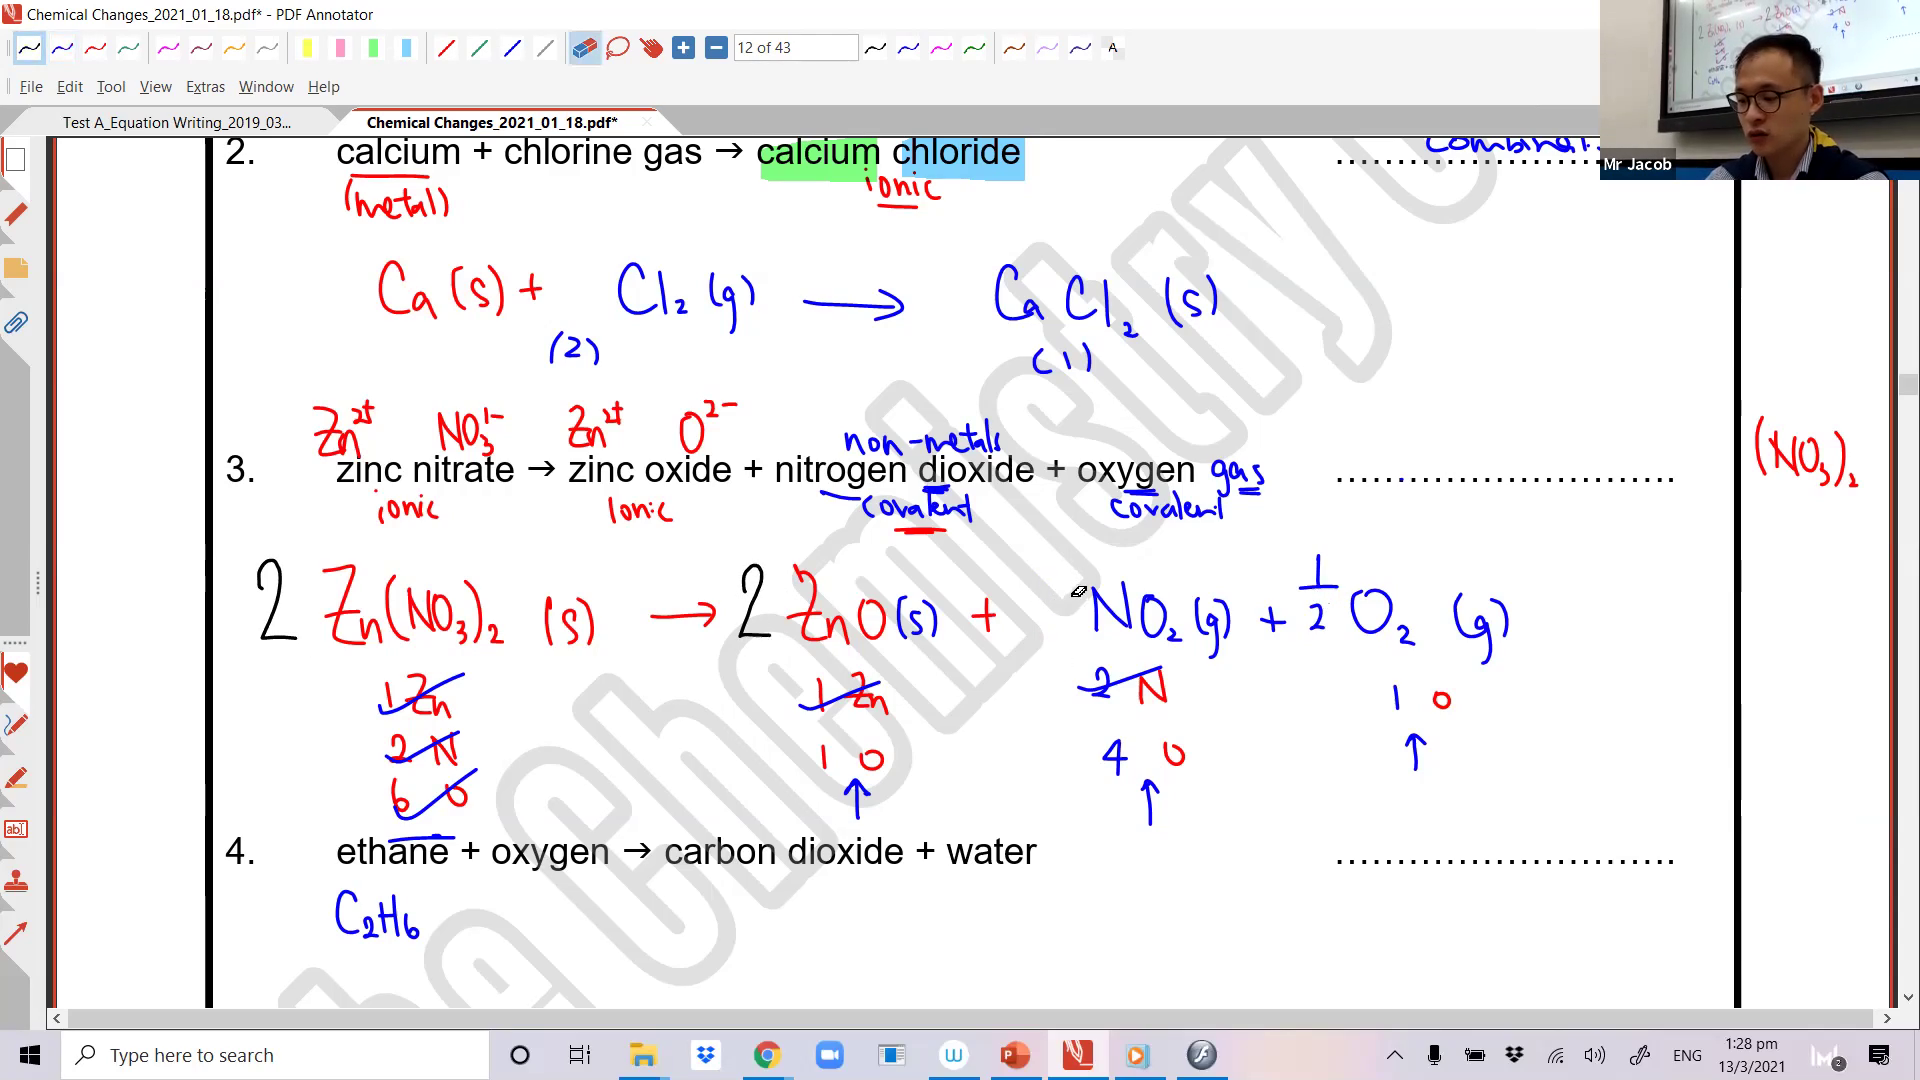 [CHEMICAL CHANGES] Types of Chemical Changes